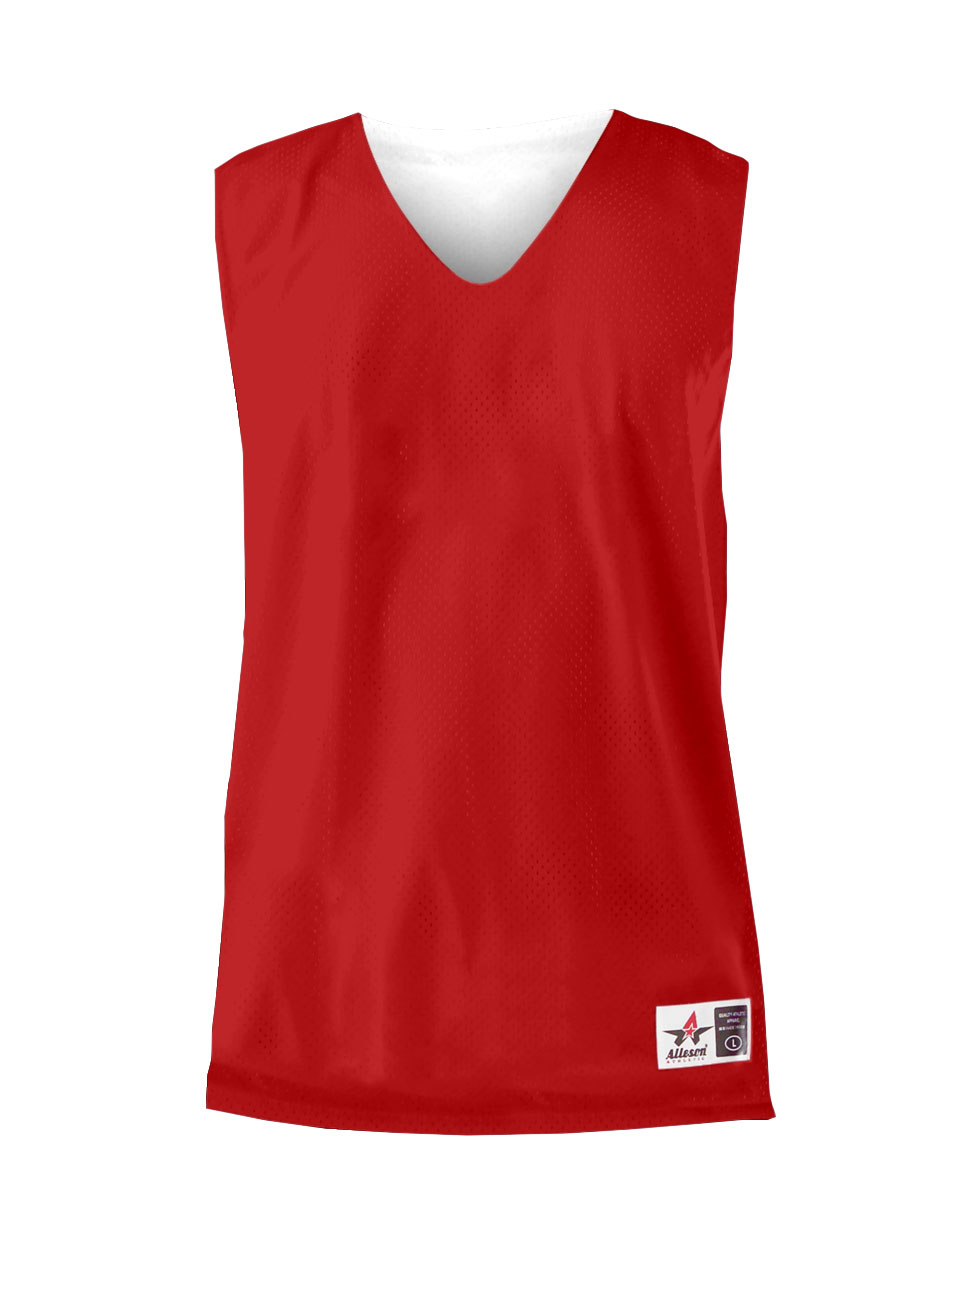 226be55e8c3 Custom Youth Reversible Mesh Tank By Alleson - Available In 24 Colors